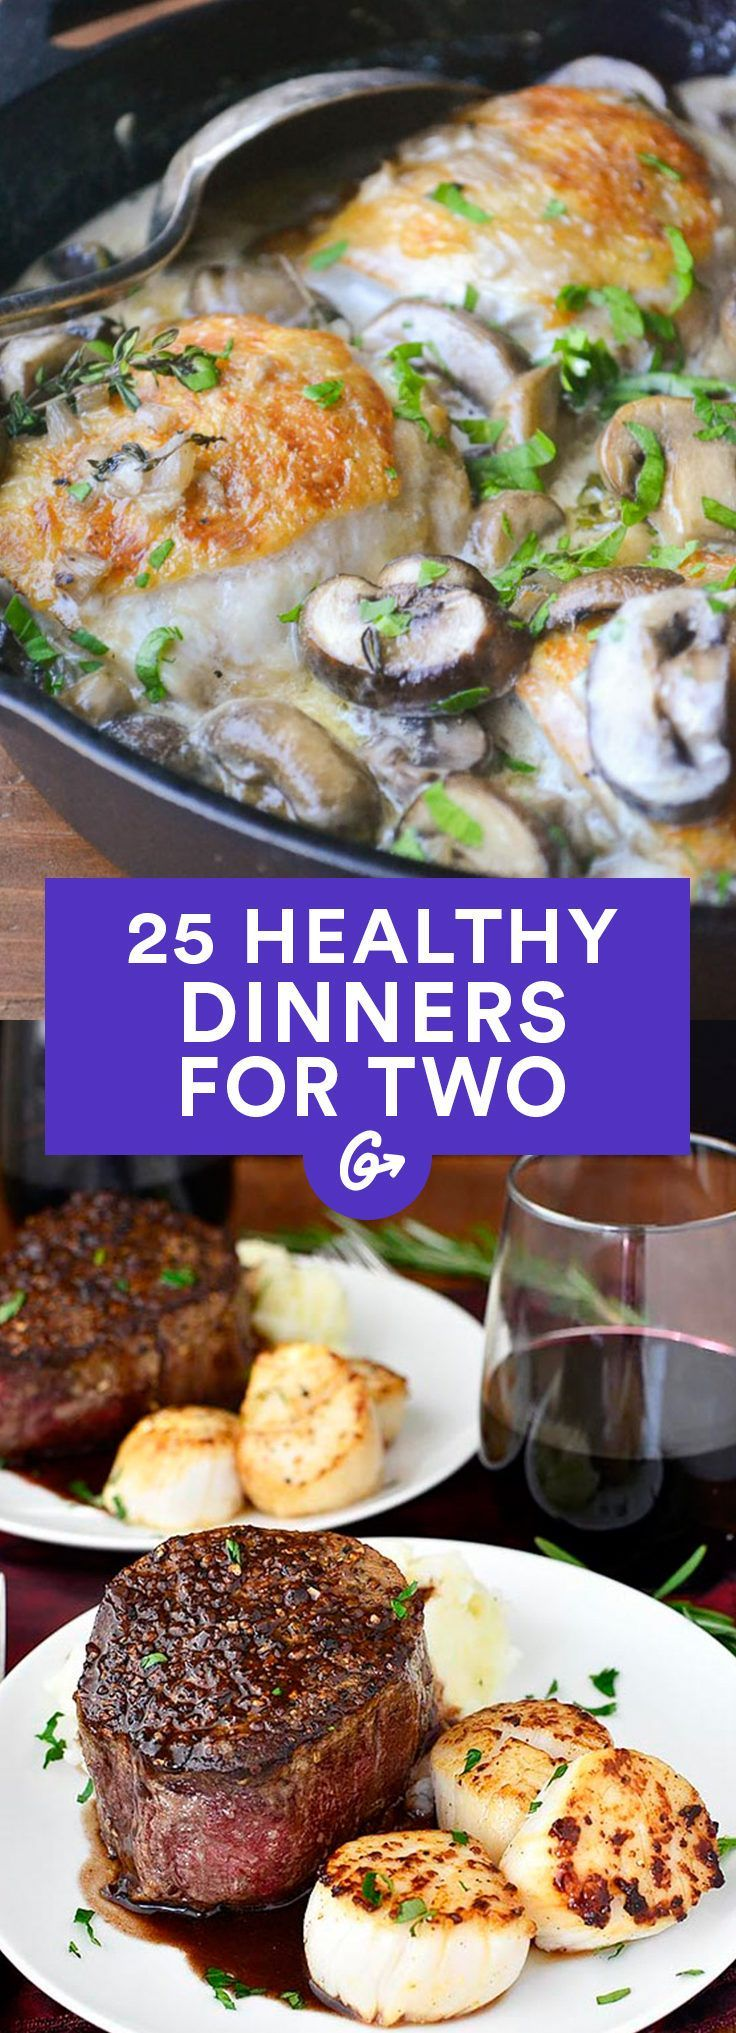 25 Healthy Dinner Recipes for Two Food recipes, Healthy